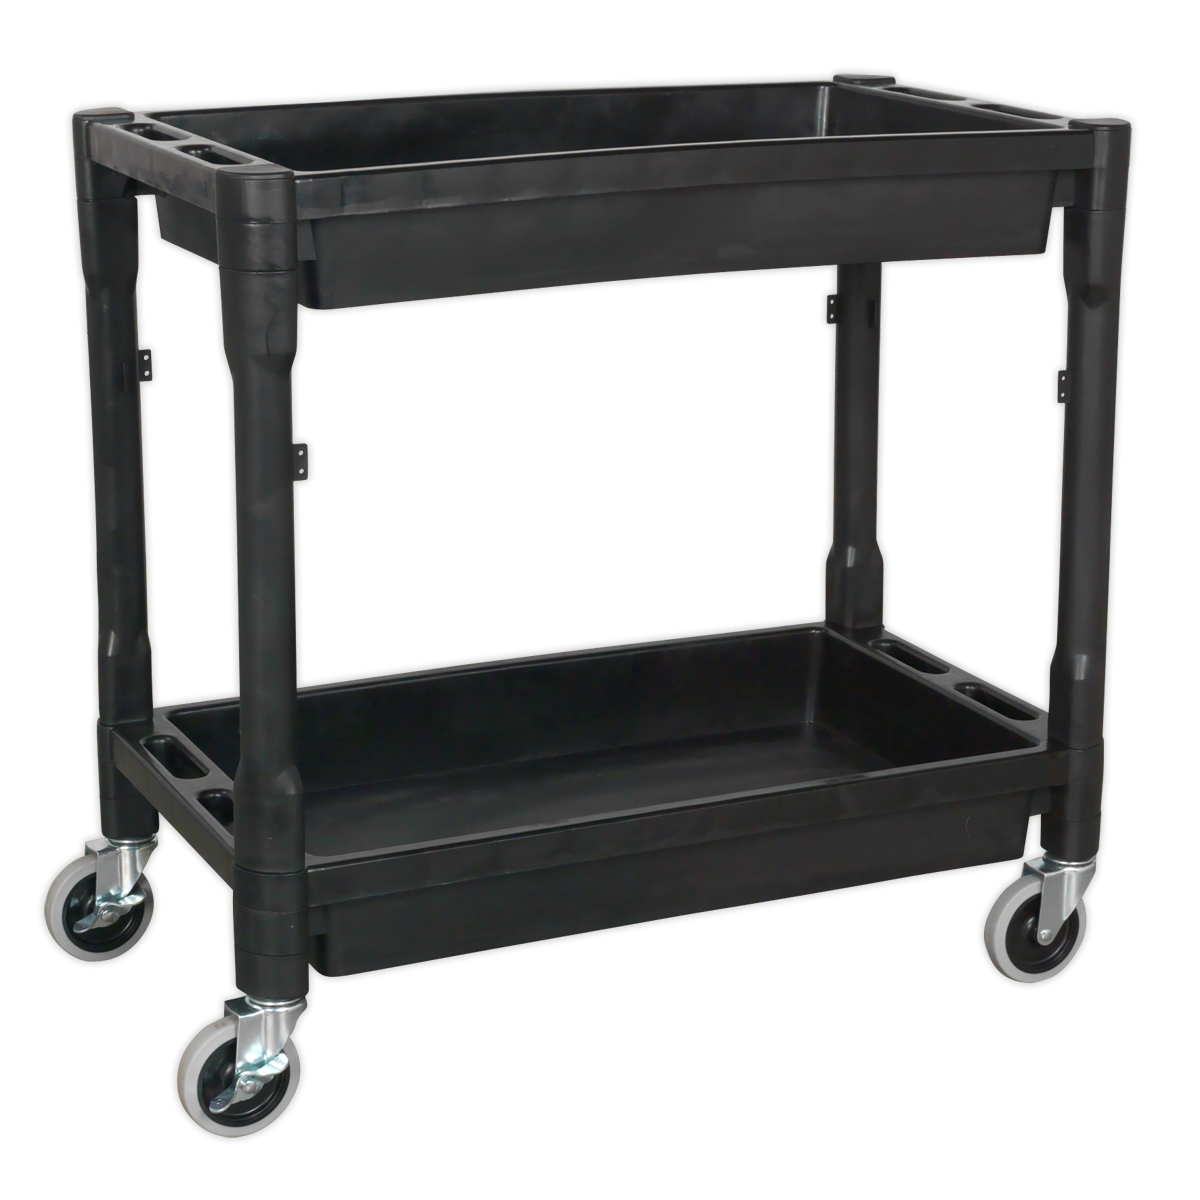 SEALEY  Trolley 2 Level Composite Heavy Duty - Black